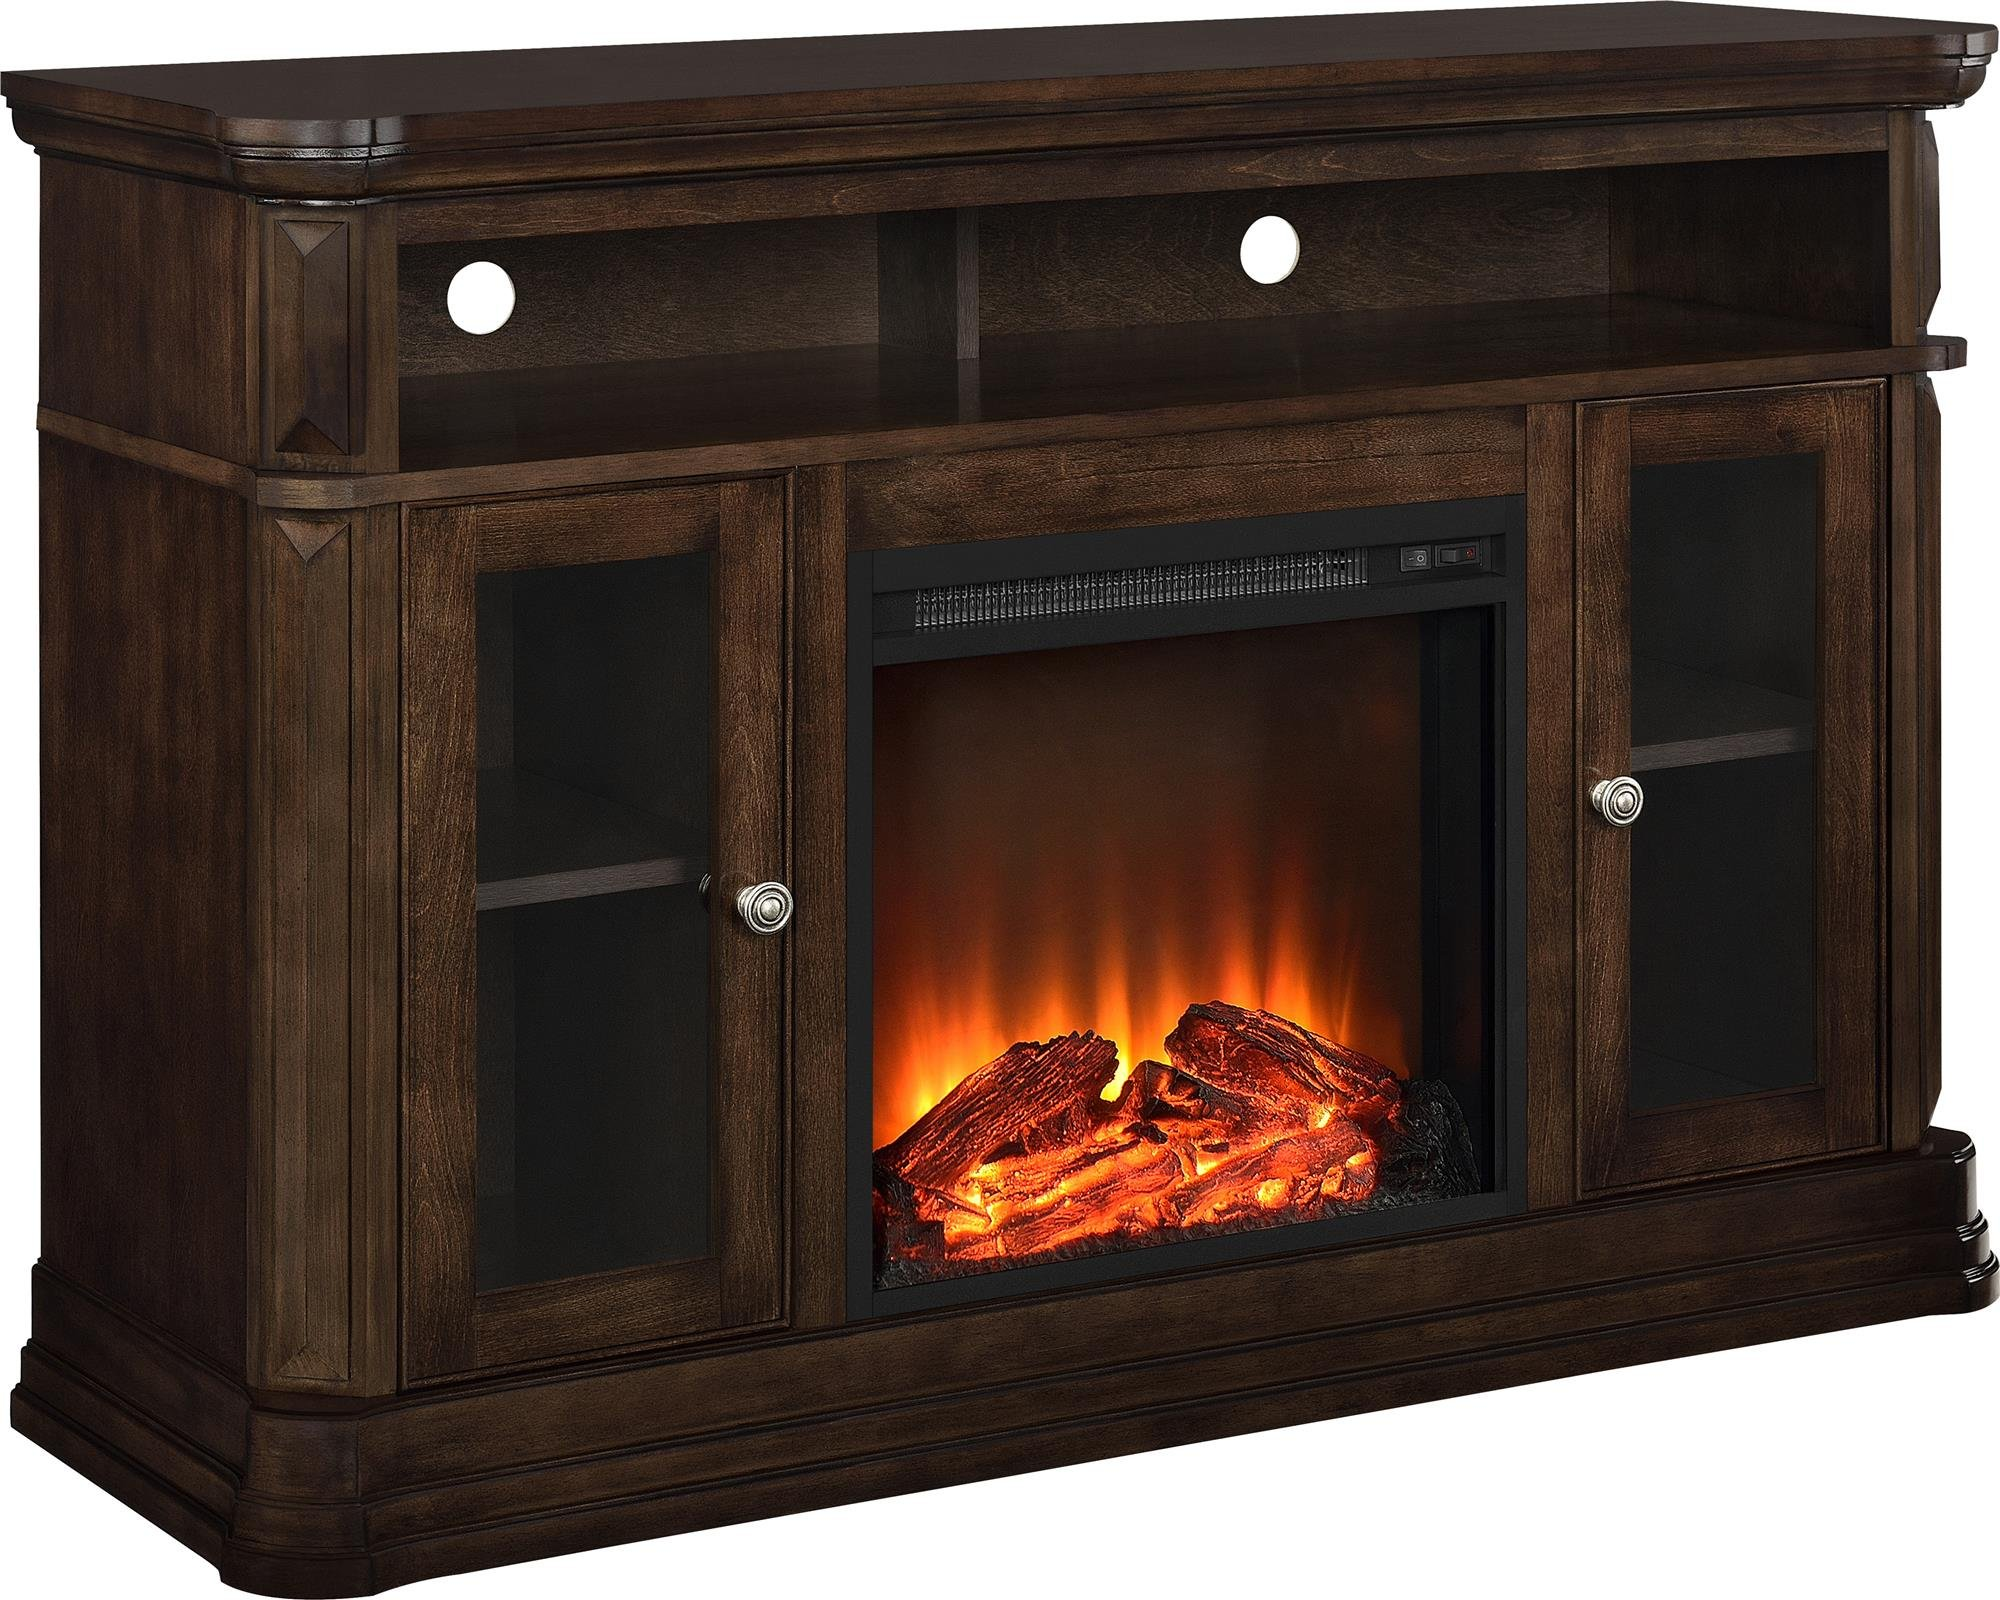 Ameriwood Home Brooklyn Electric Fireplace TV Console for TVs up to 50'', Espress by Altra Furniture